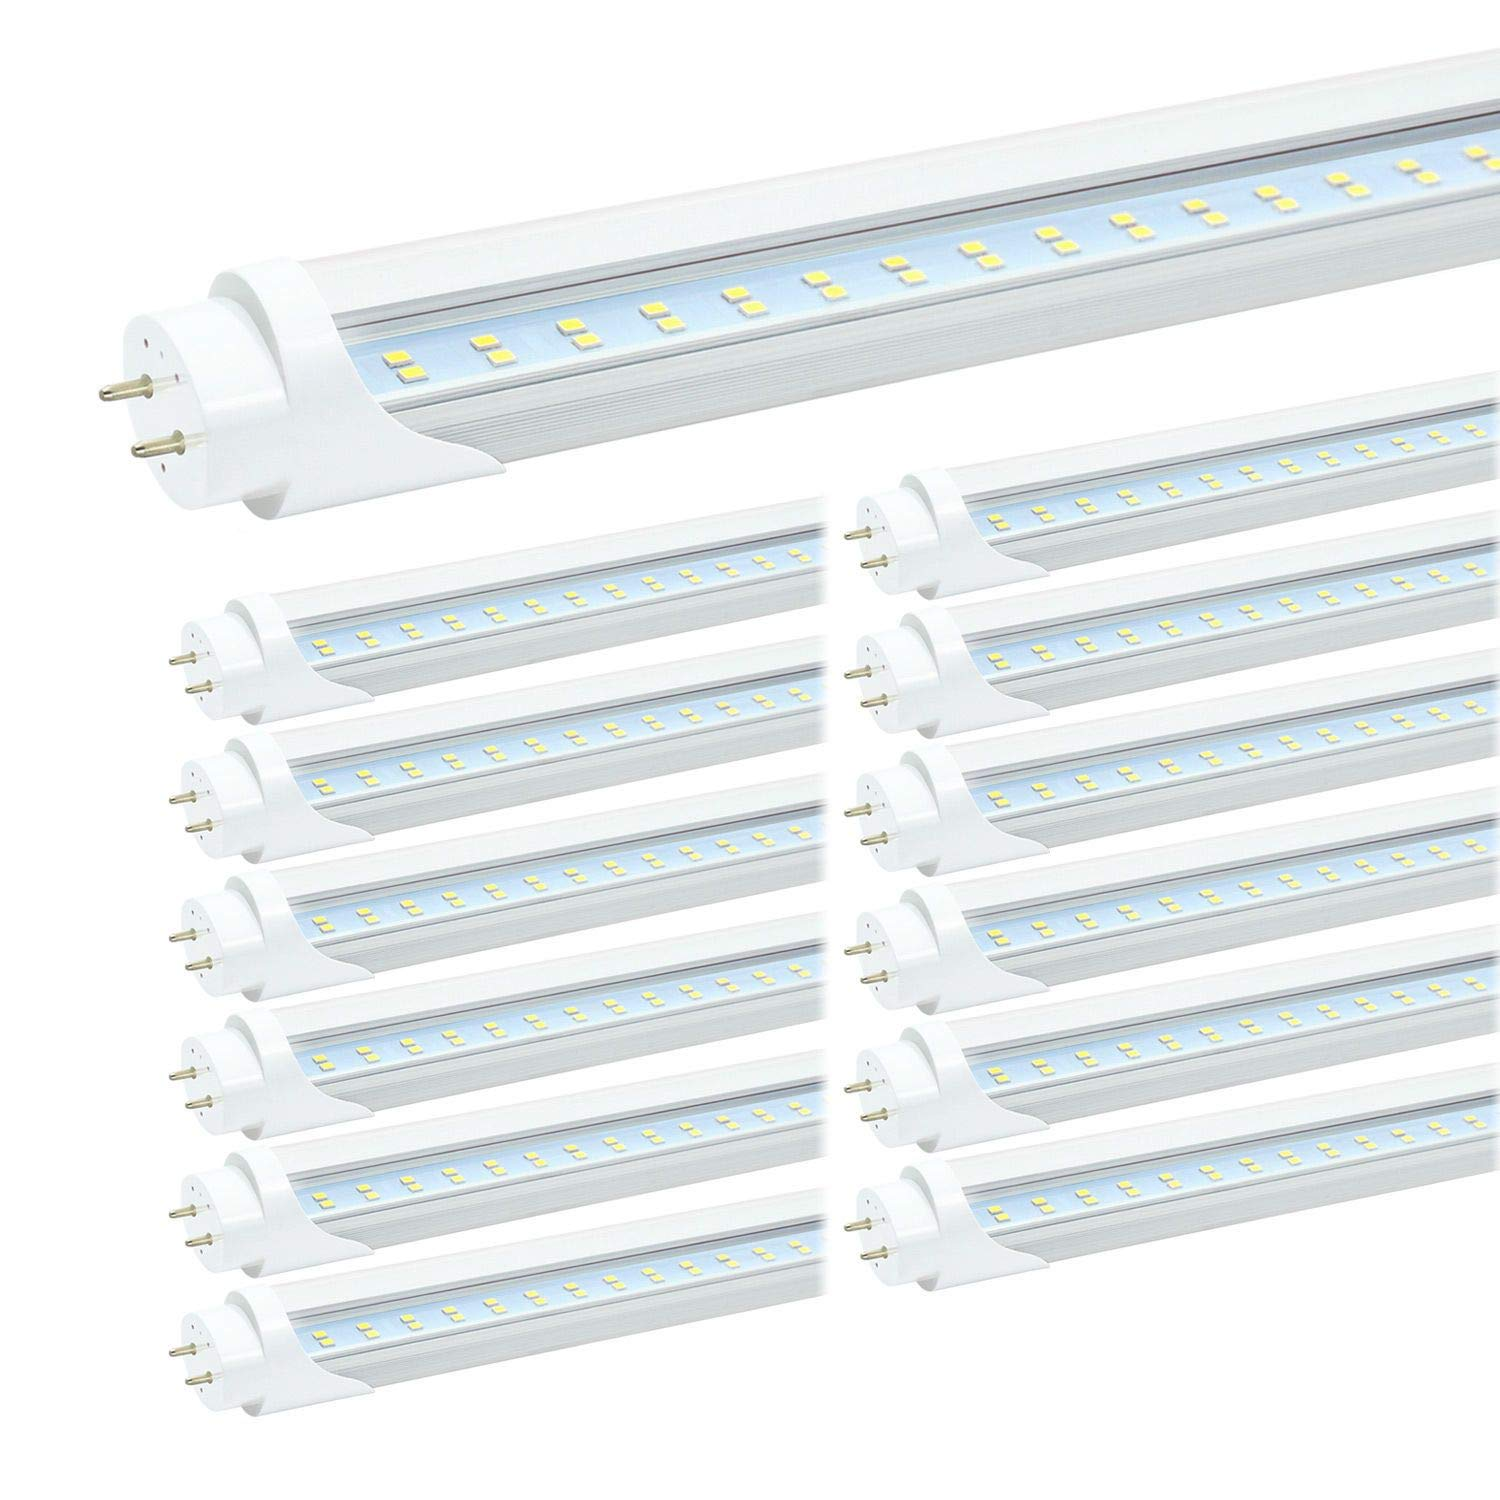 JESLED 4FT LED Tube Light - 24W 3000LM, 6000K Cool White, T8 T10 T12 LED Replacement Bulbs for Fluorescent Fixture, Clear, Dual-end Powered, Ballast Bypass, Garage Warehouse Shop Lights (12-Pack)